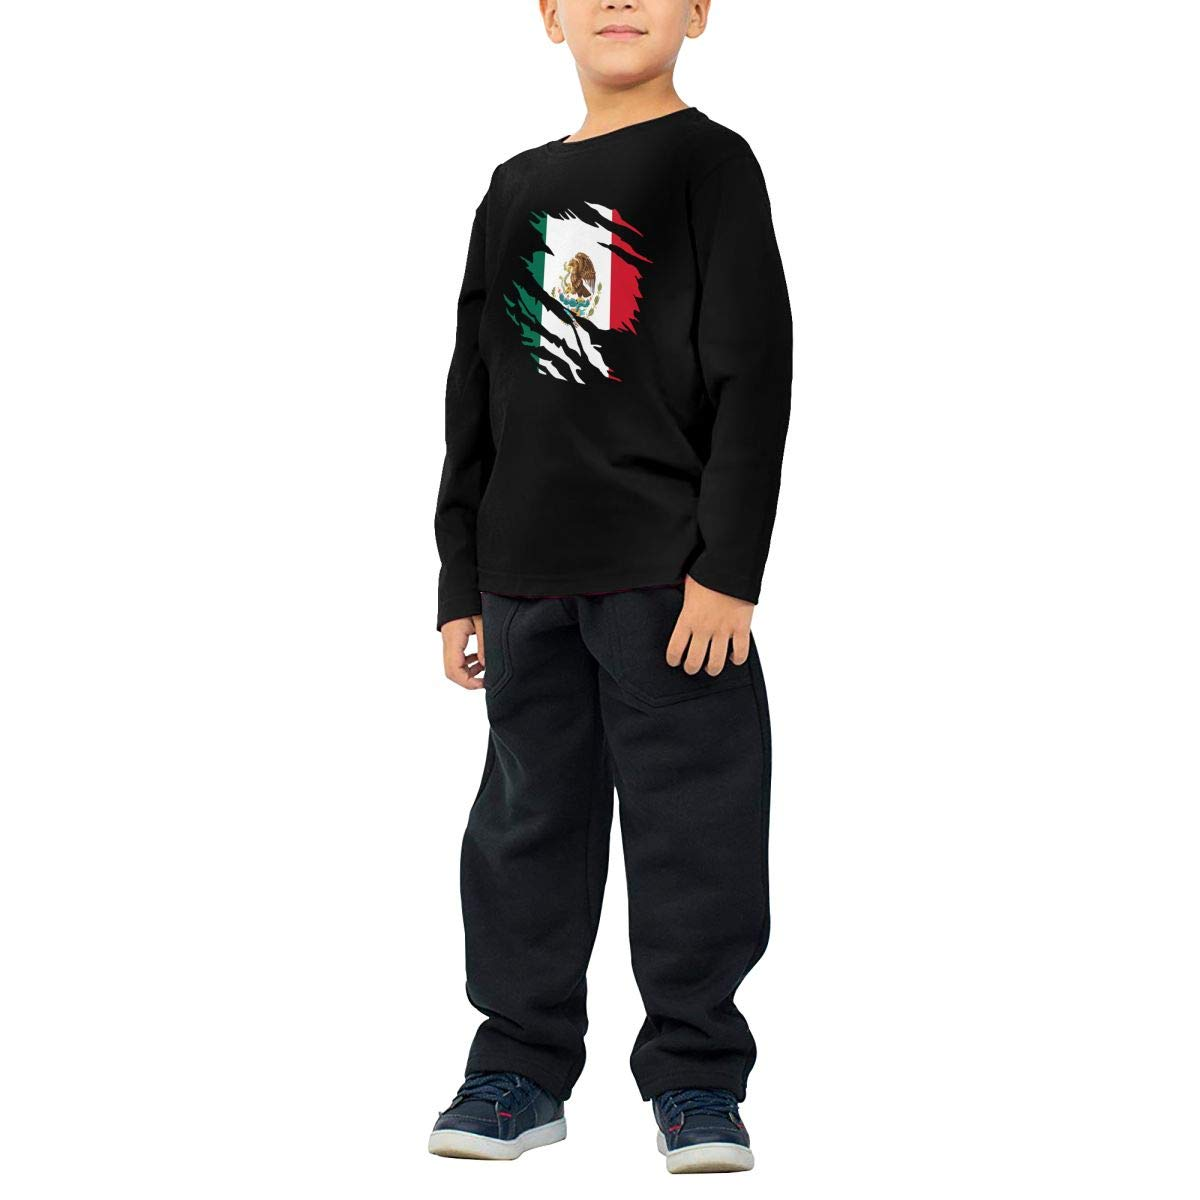 SHIRT1-KIDS Ripped Mexico Flag Toddler//Infant O-Neck Long Sleeve Shirt Tee for Toddlers